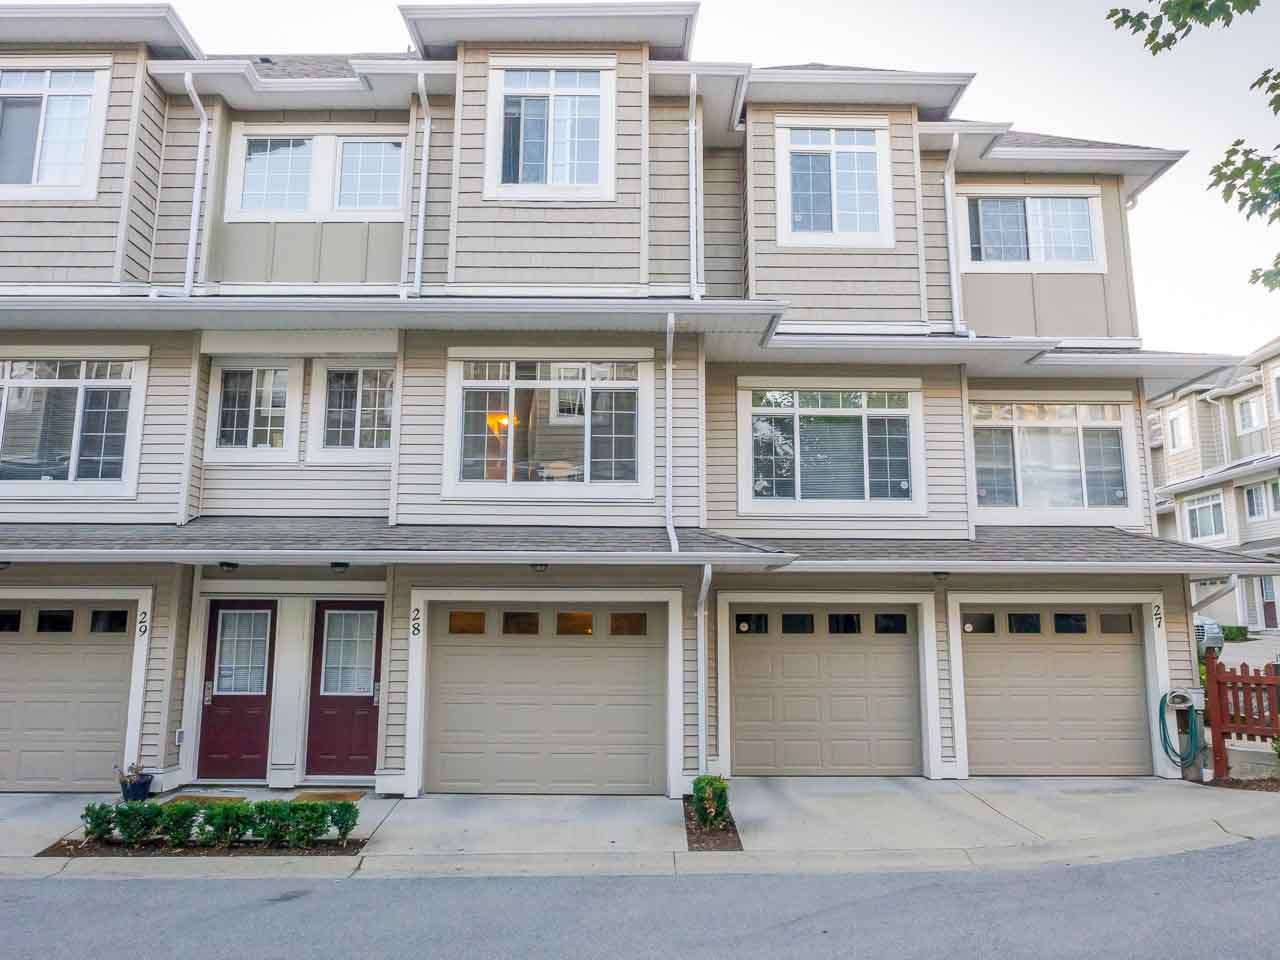 "Main Photo: 28 6852 193 Street in Surrey: Clayton Townhouse for sale in ""Indigo"" (Cloverdale)  : MLS® # R2207302"